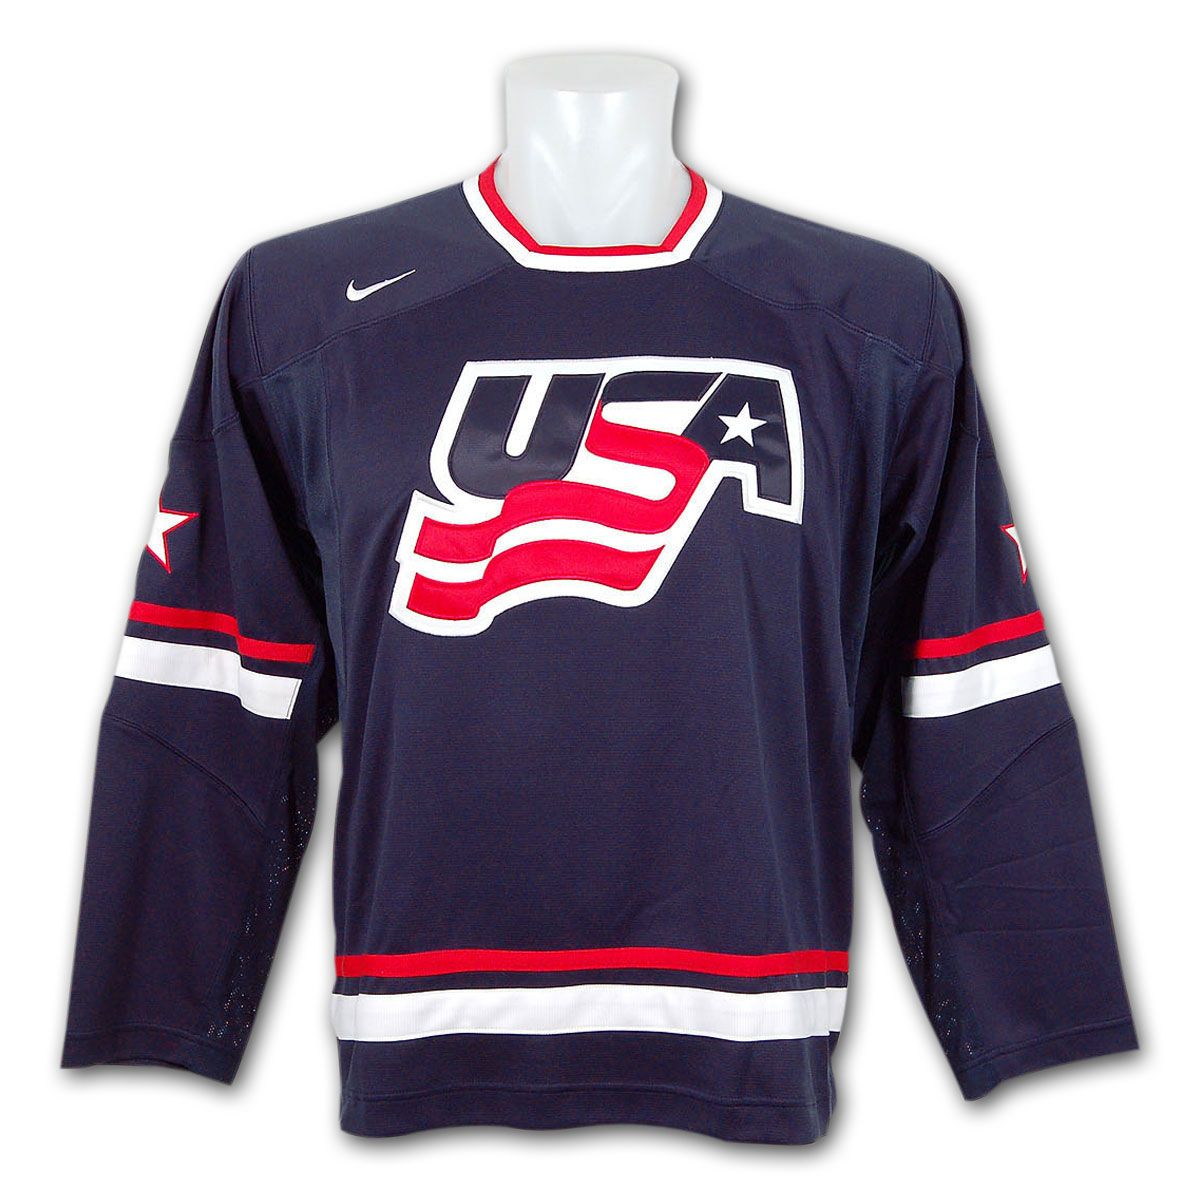 42182f025 Team Usa Hockey Nike Shirt - BCD Tofu House